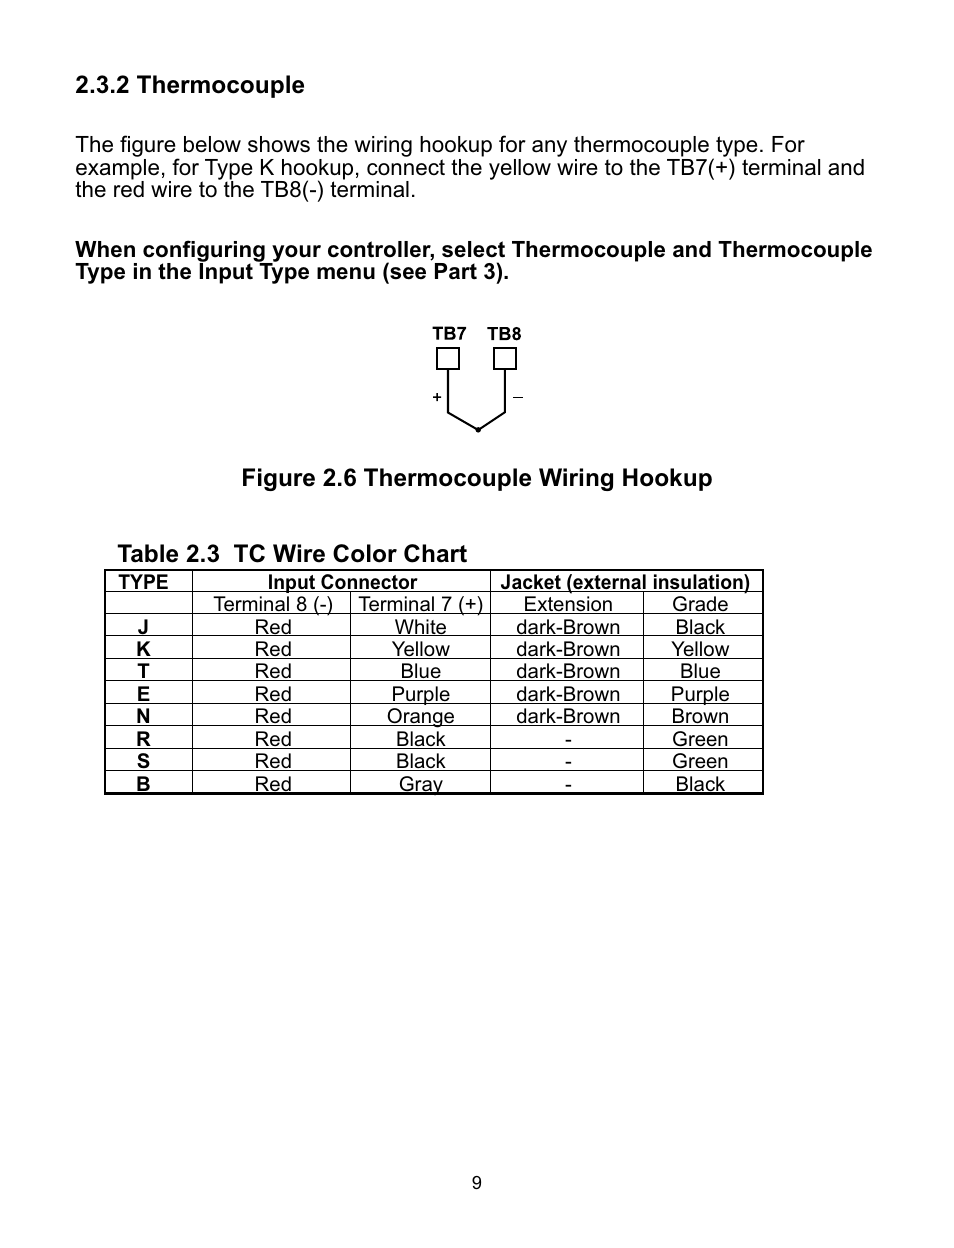 medium resolution of 2 thermocouple figure 2 6 thermocouple wiring hookup table 2 3 tc wire color chart